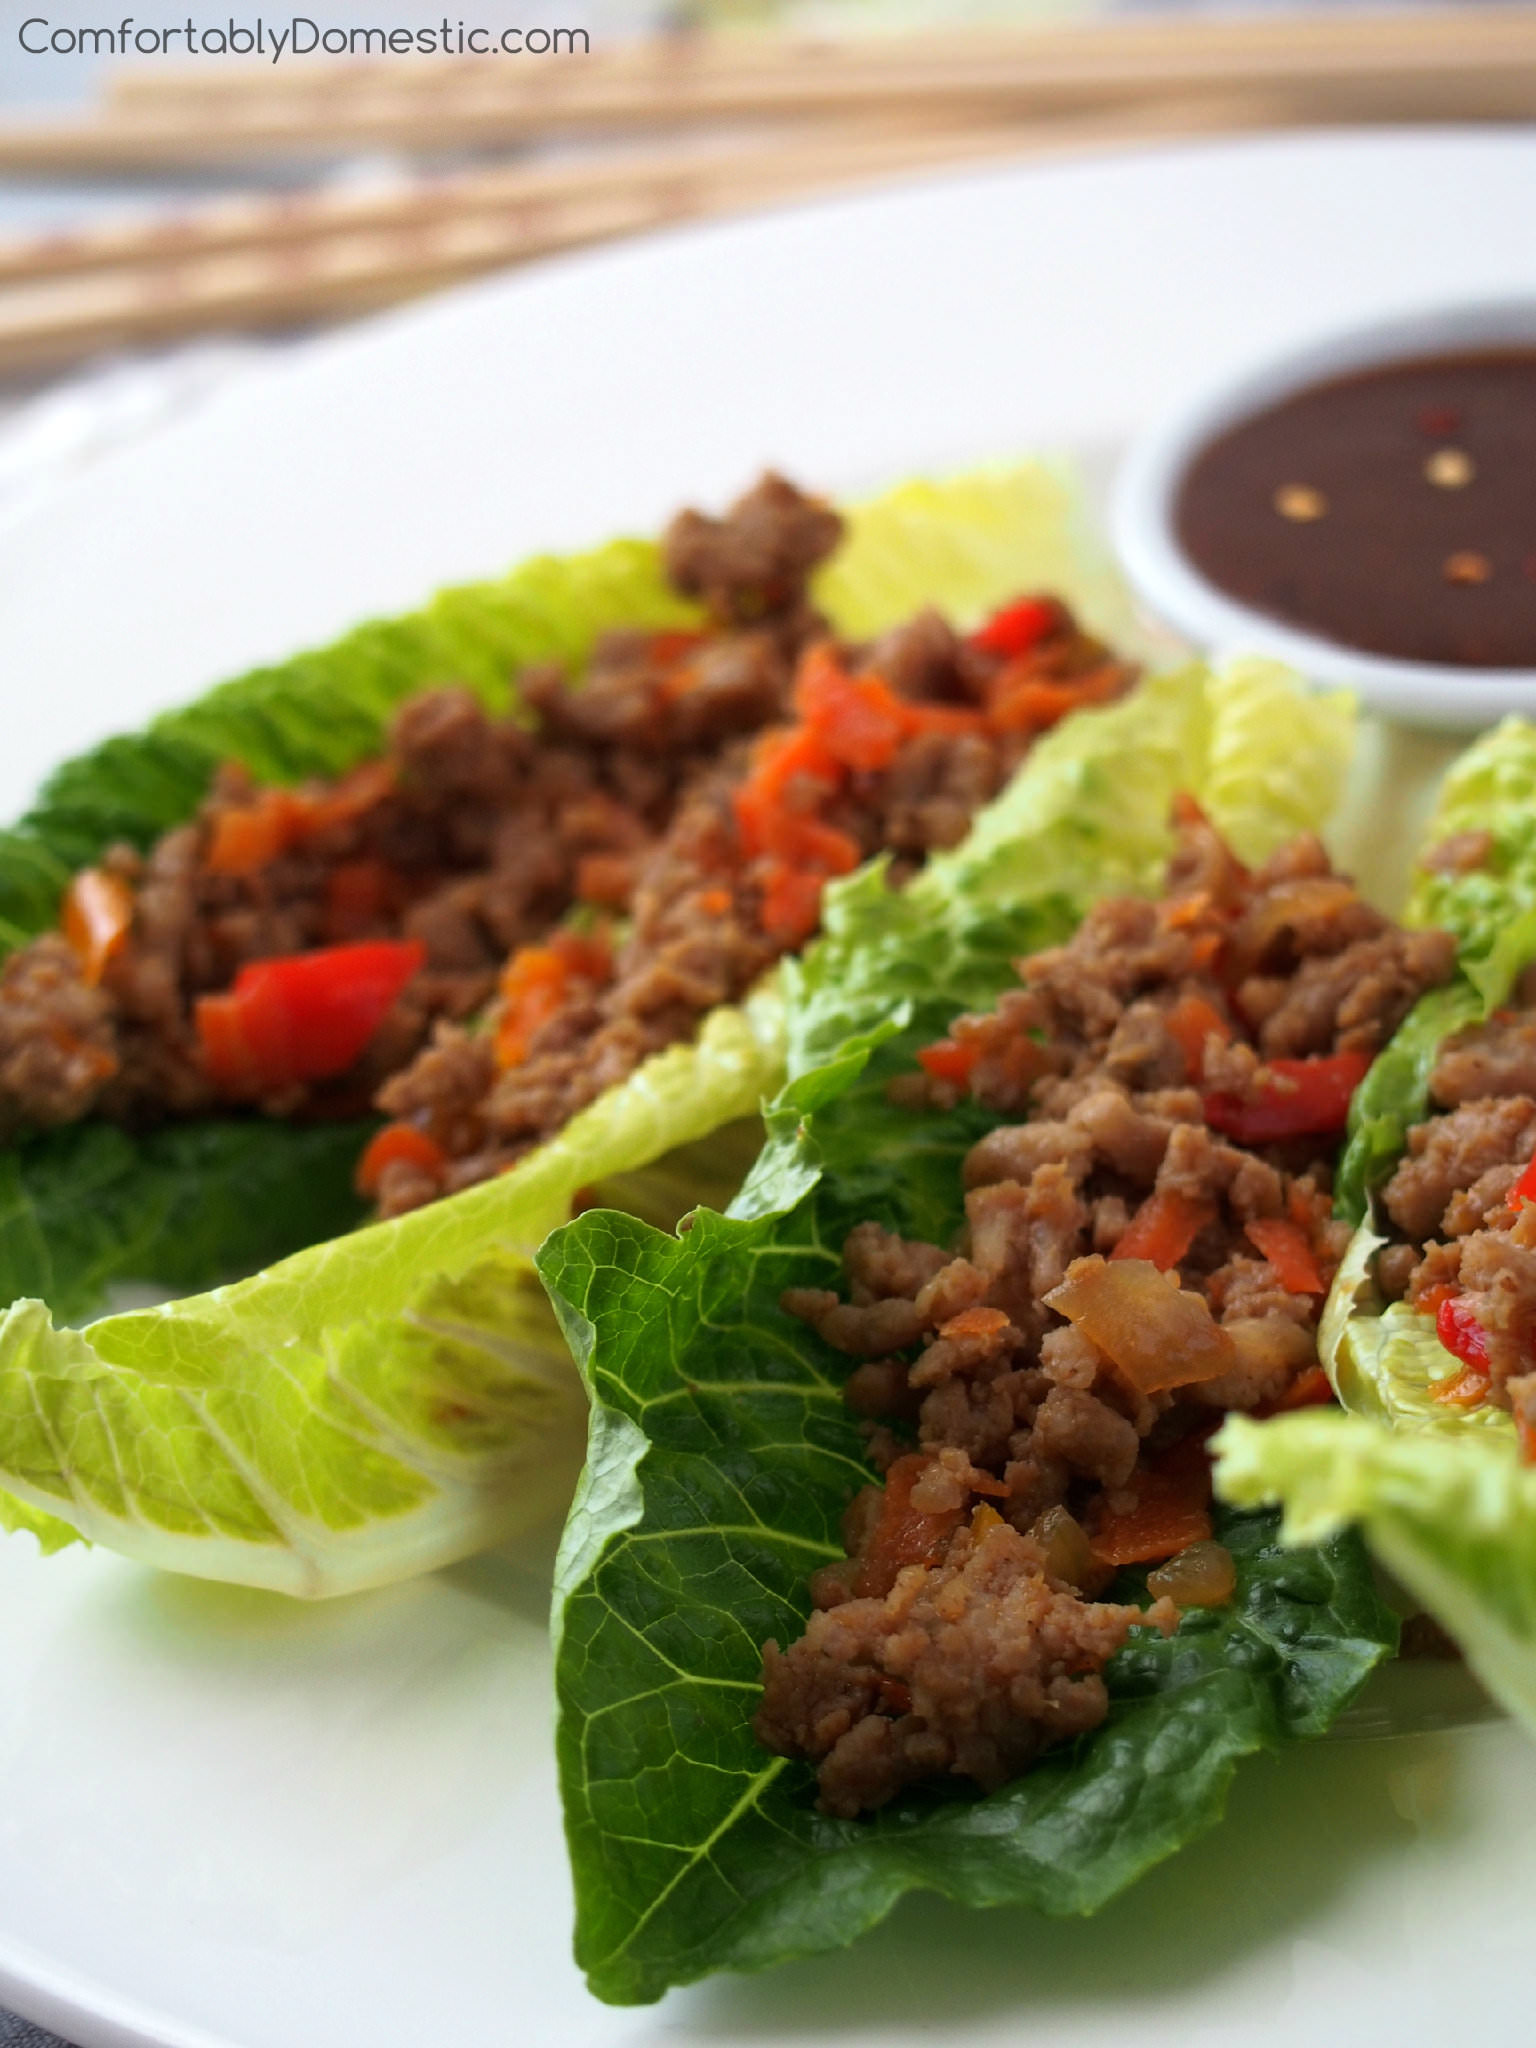 P.F. Chang's lettuce wraps are delicious, but this recipe is better! A lighter version of the sweet, salty, savory P.F. Chang's lettuce wraps, made with a blend of ground turkey and lean pork, shredded vegetables, and a tasty soy-ginger sauce that is fantastic on just about everything. | ComfortablyDomestic.com